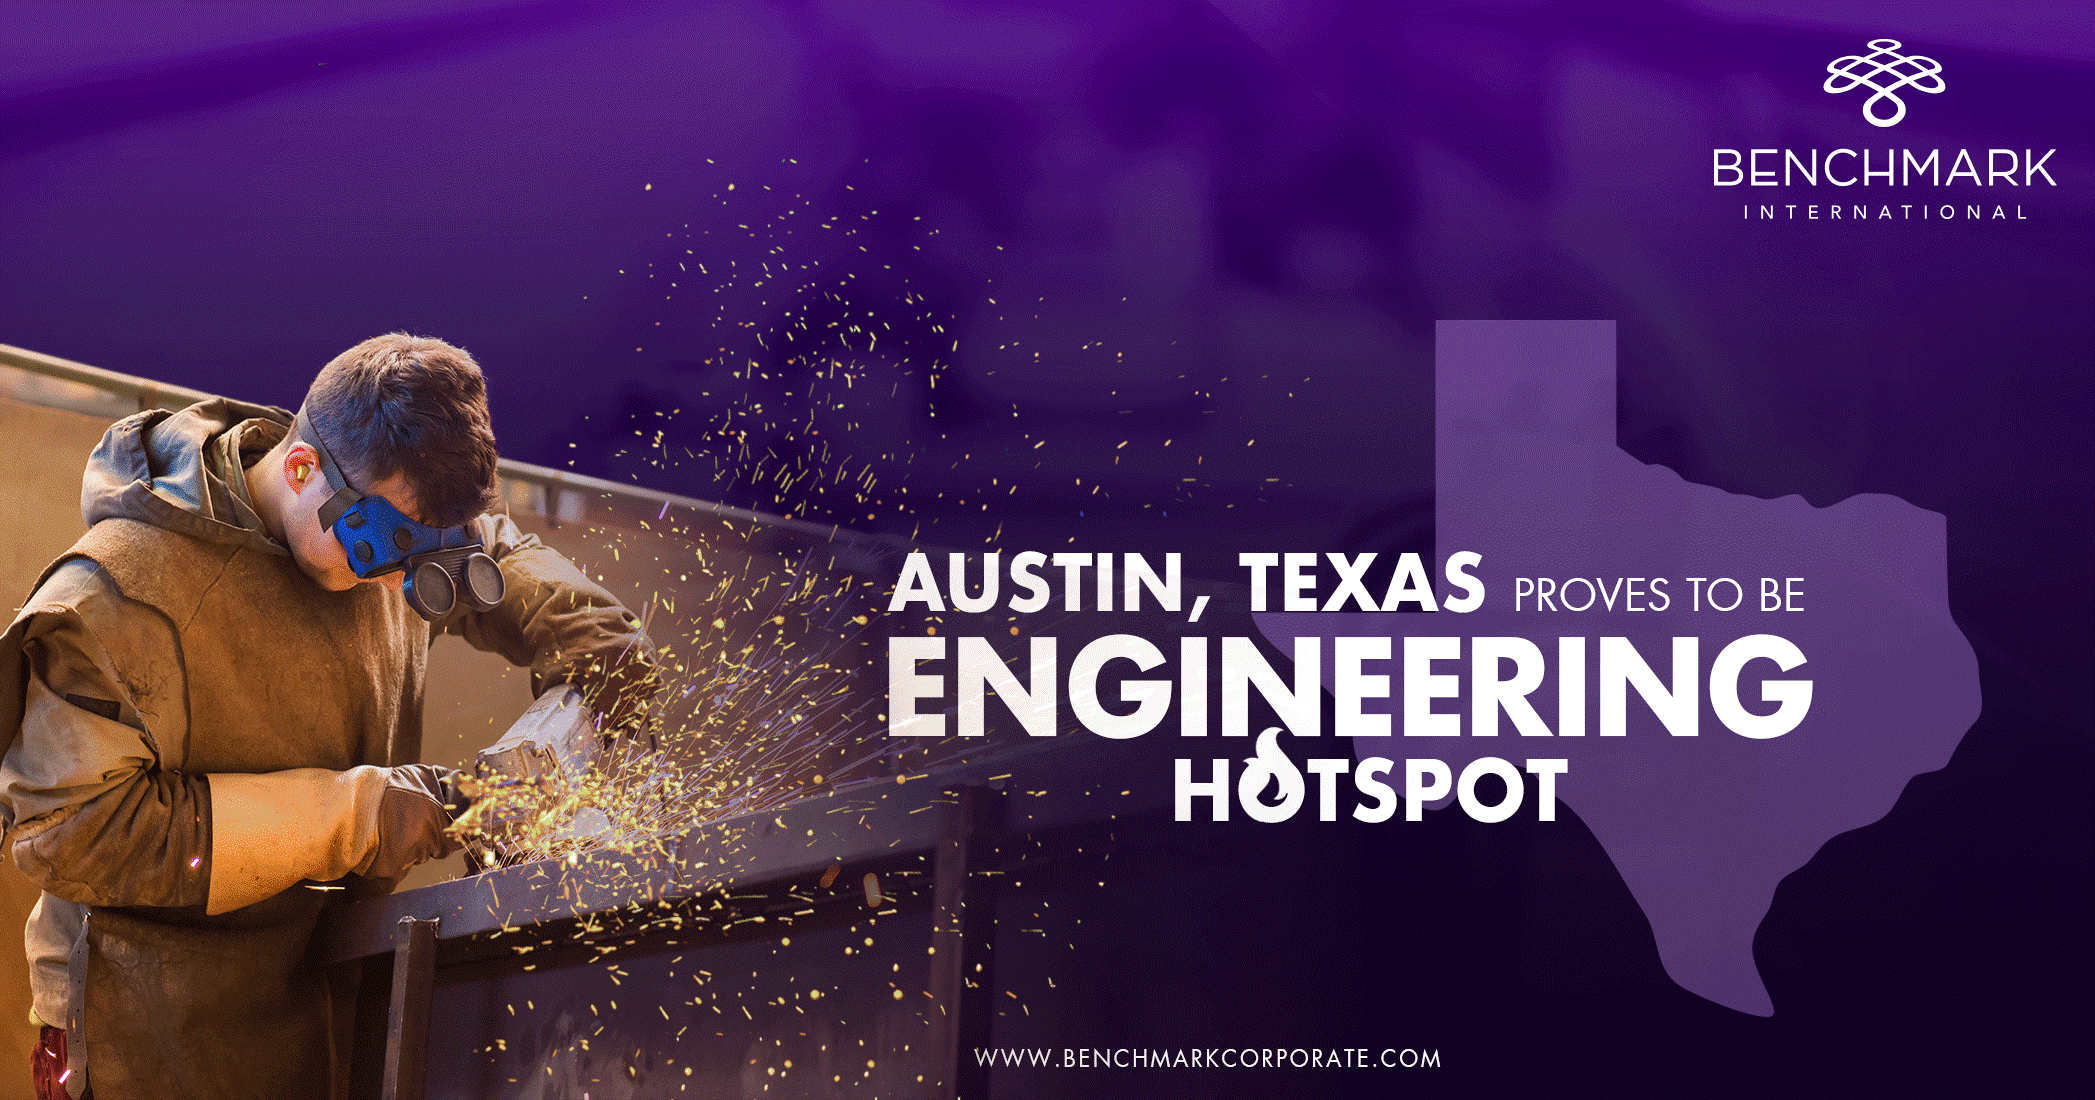 Austin, Texas Proves to be an Engineering Hotspot